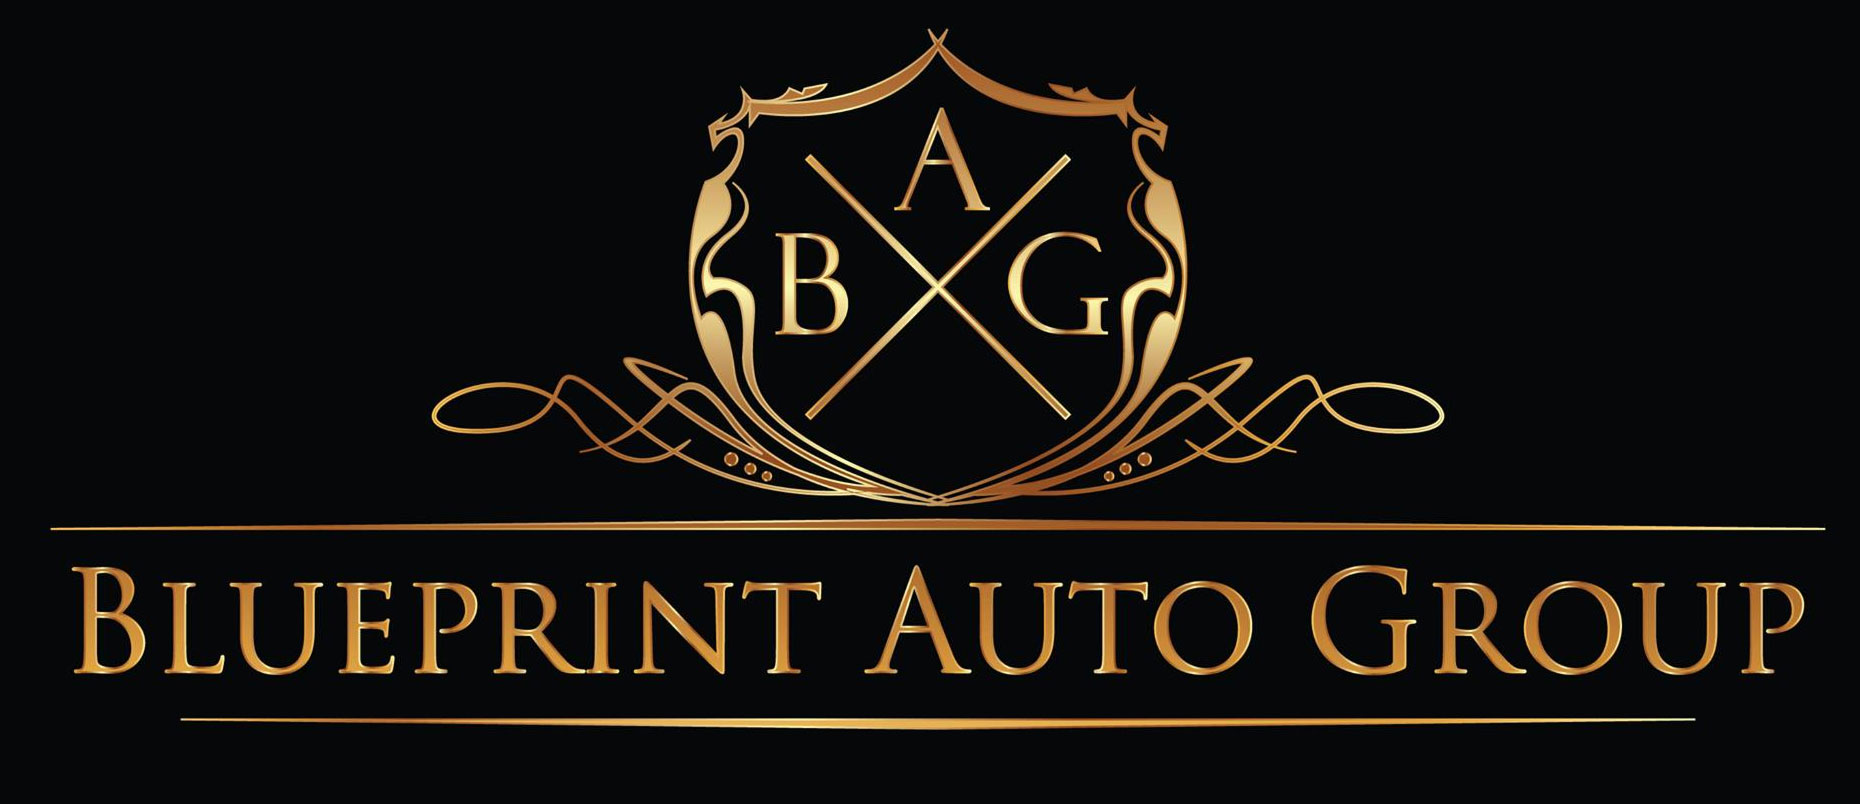 BLUEPRINT AUTO GROUP INC